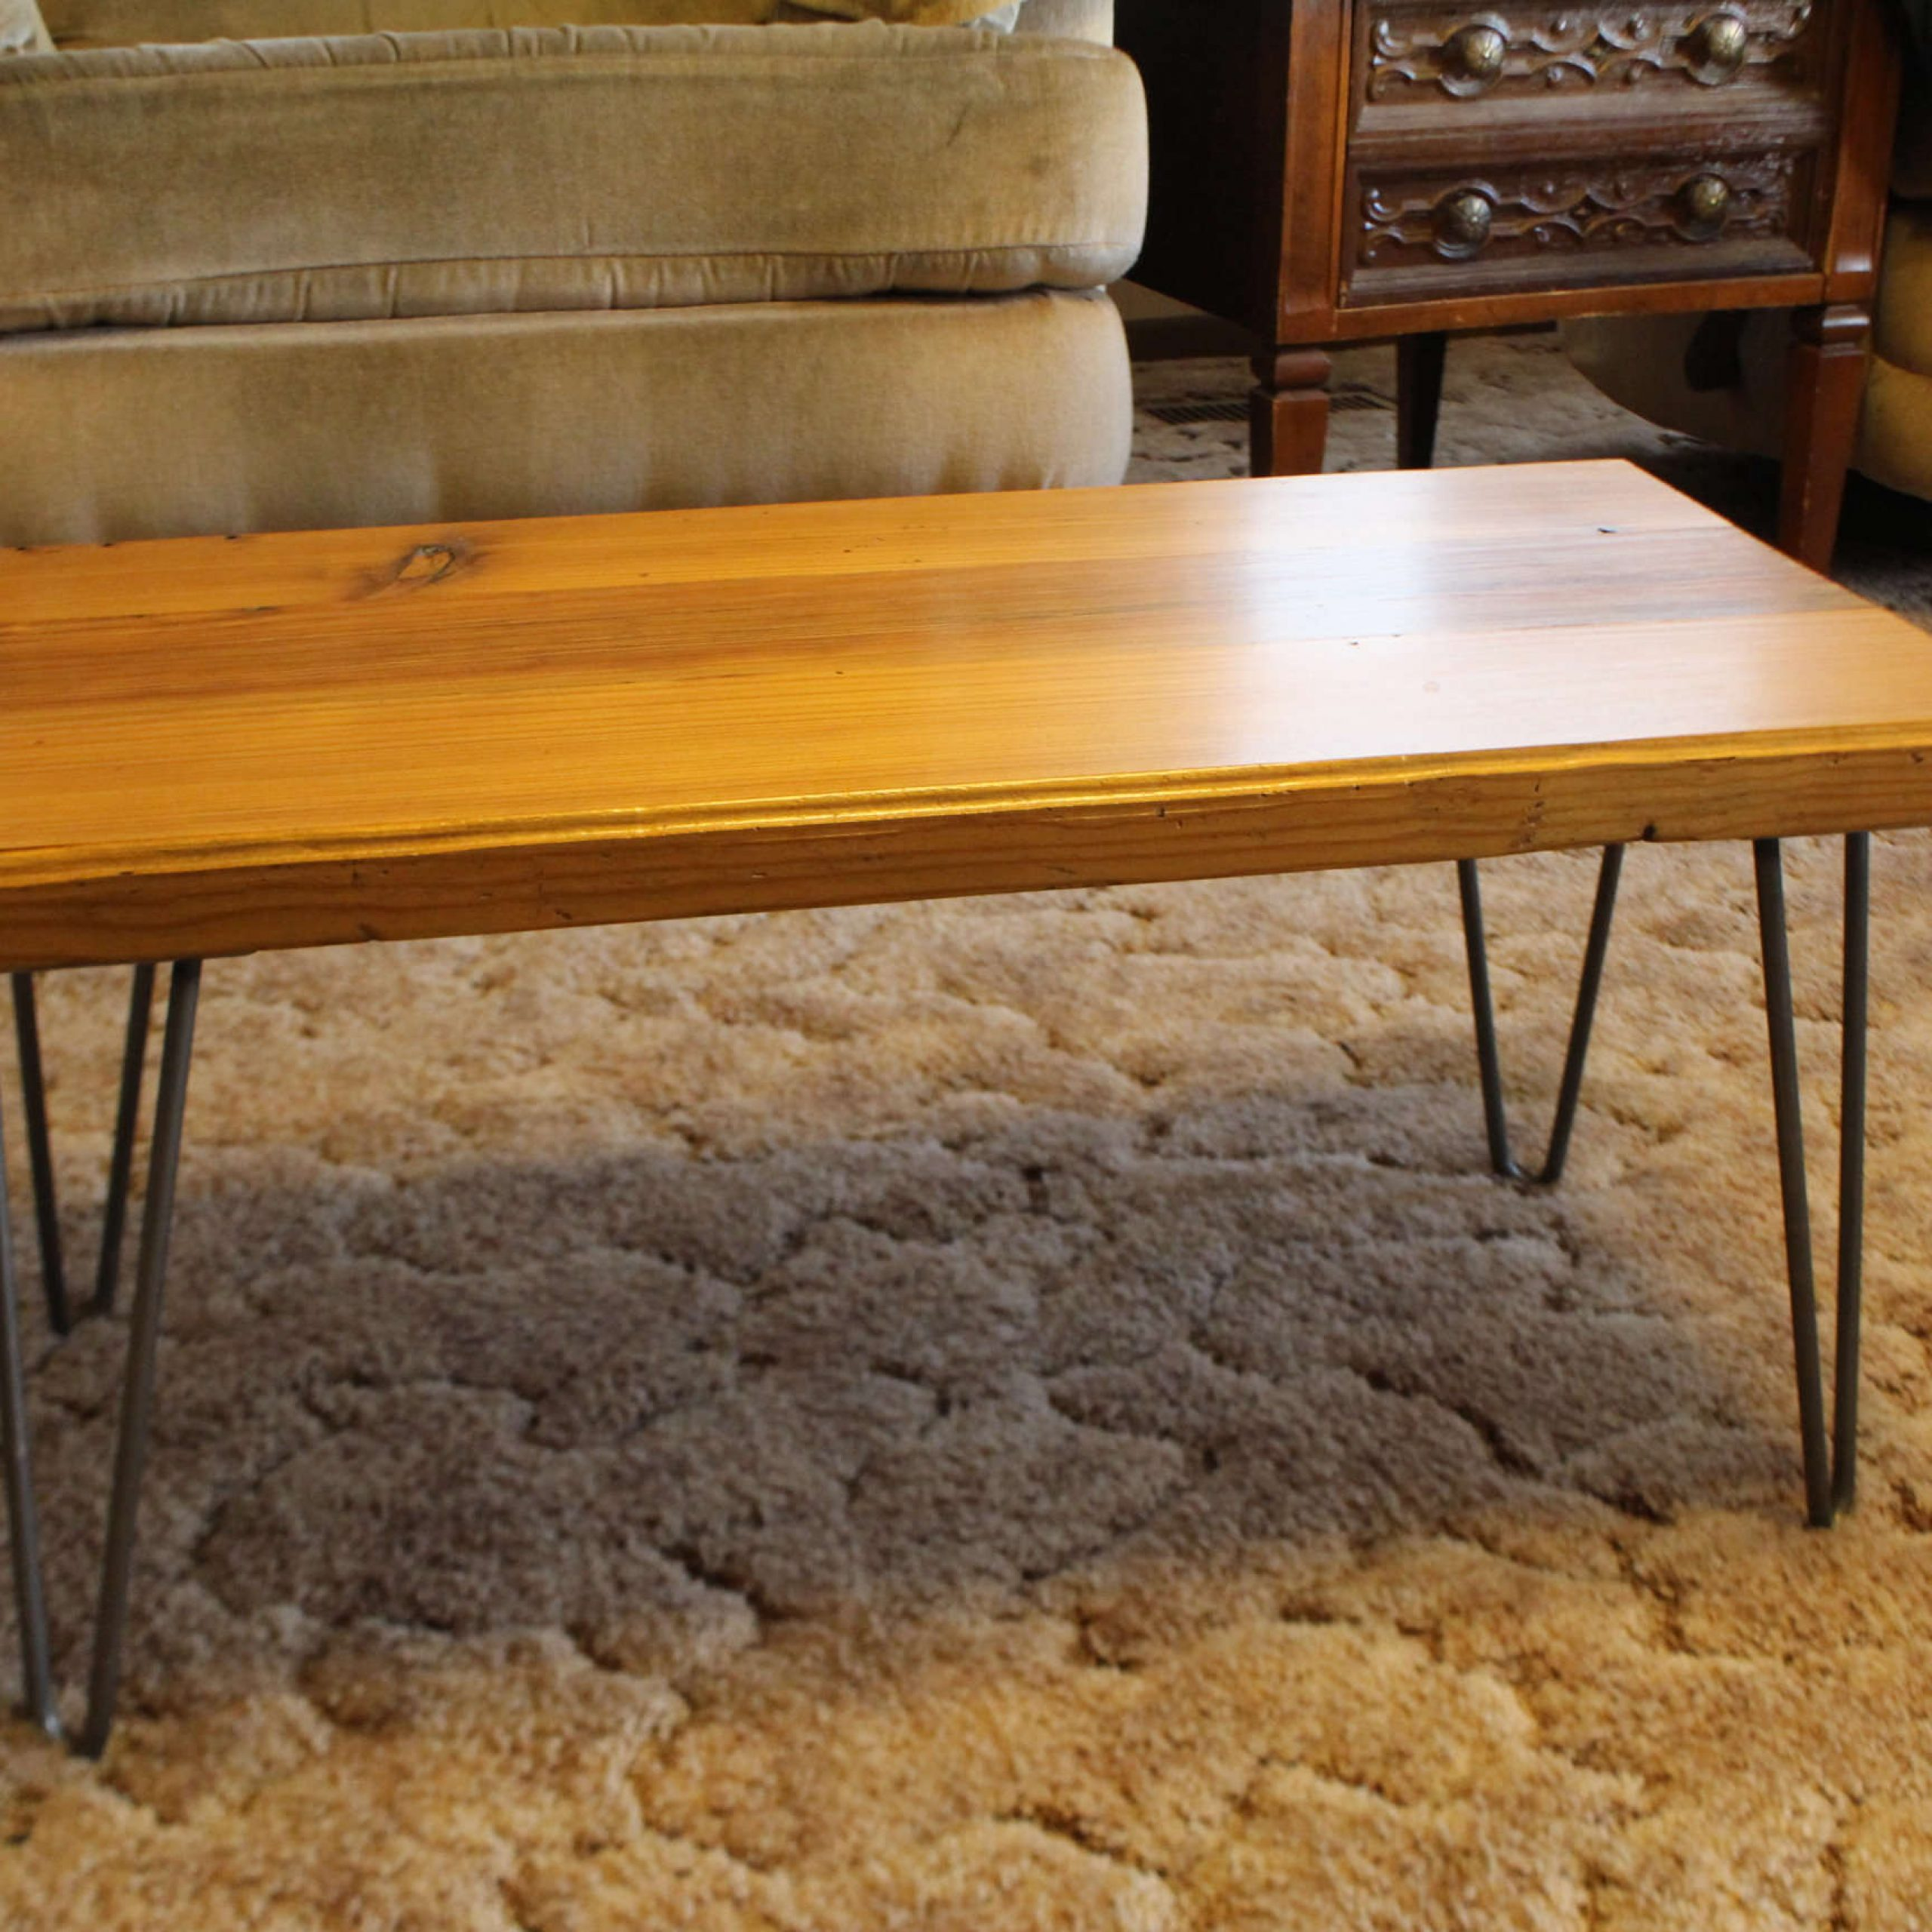 Splendid Reclaimed Barn Wood Table Furniture Pretty Rustic Regarding Most Up To Date Griffin Reclaimed Wood Dining Tables (View 18 of 25)